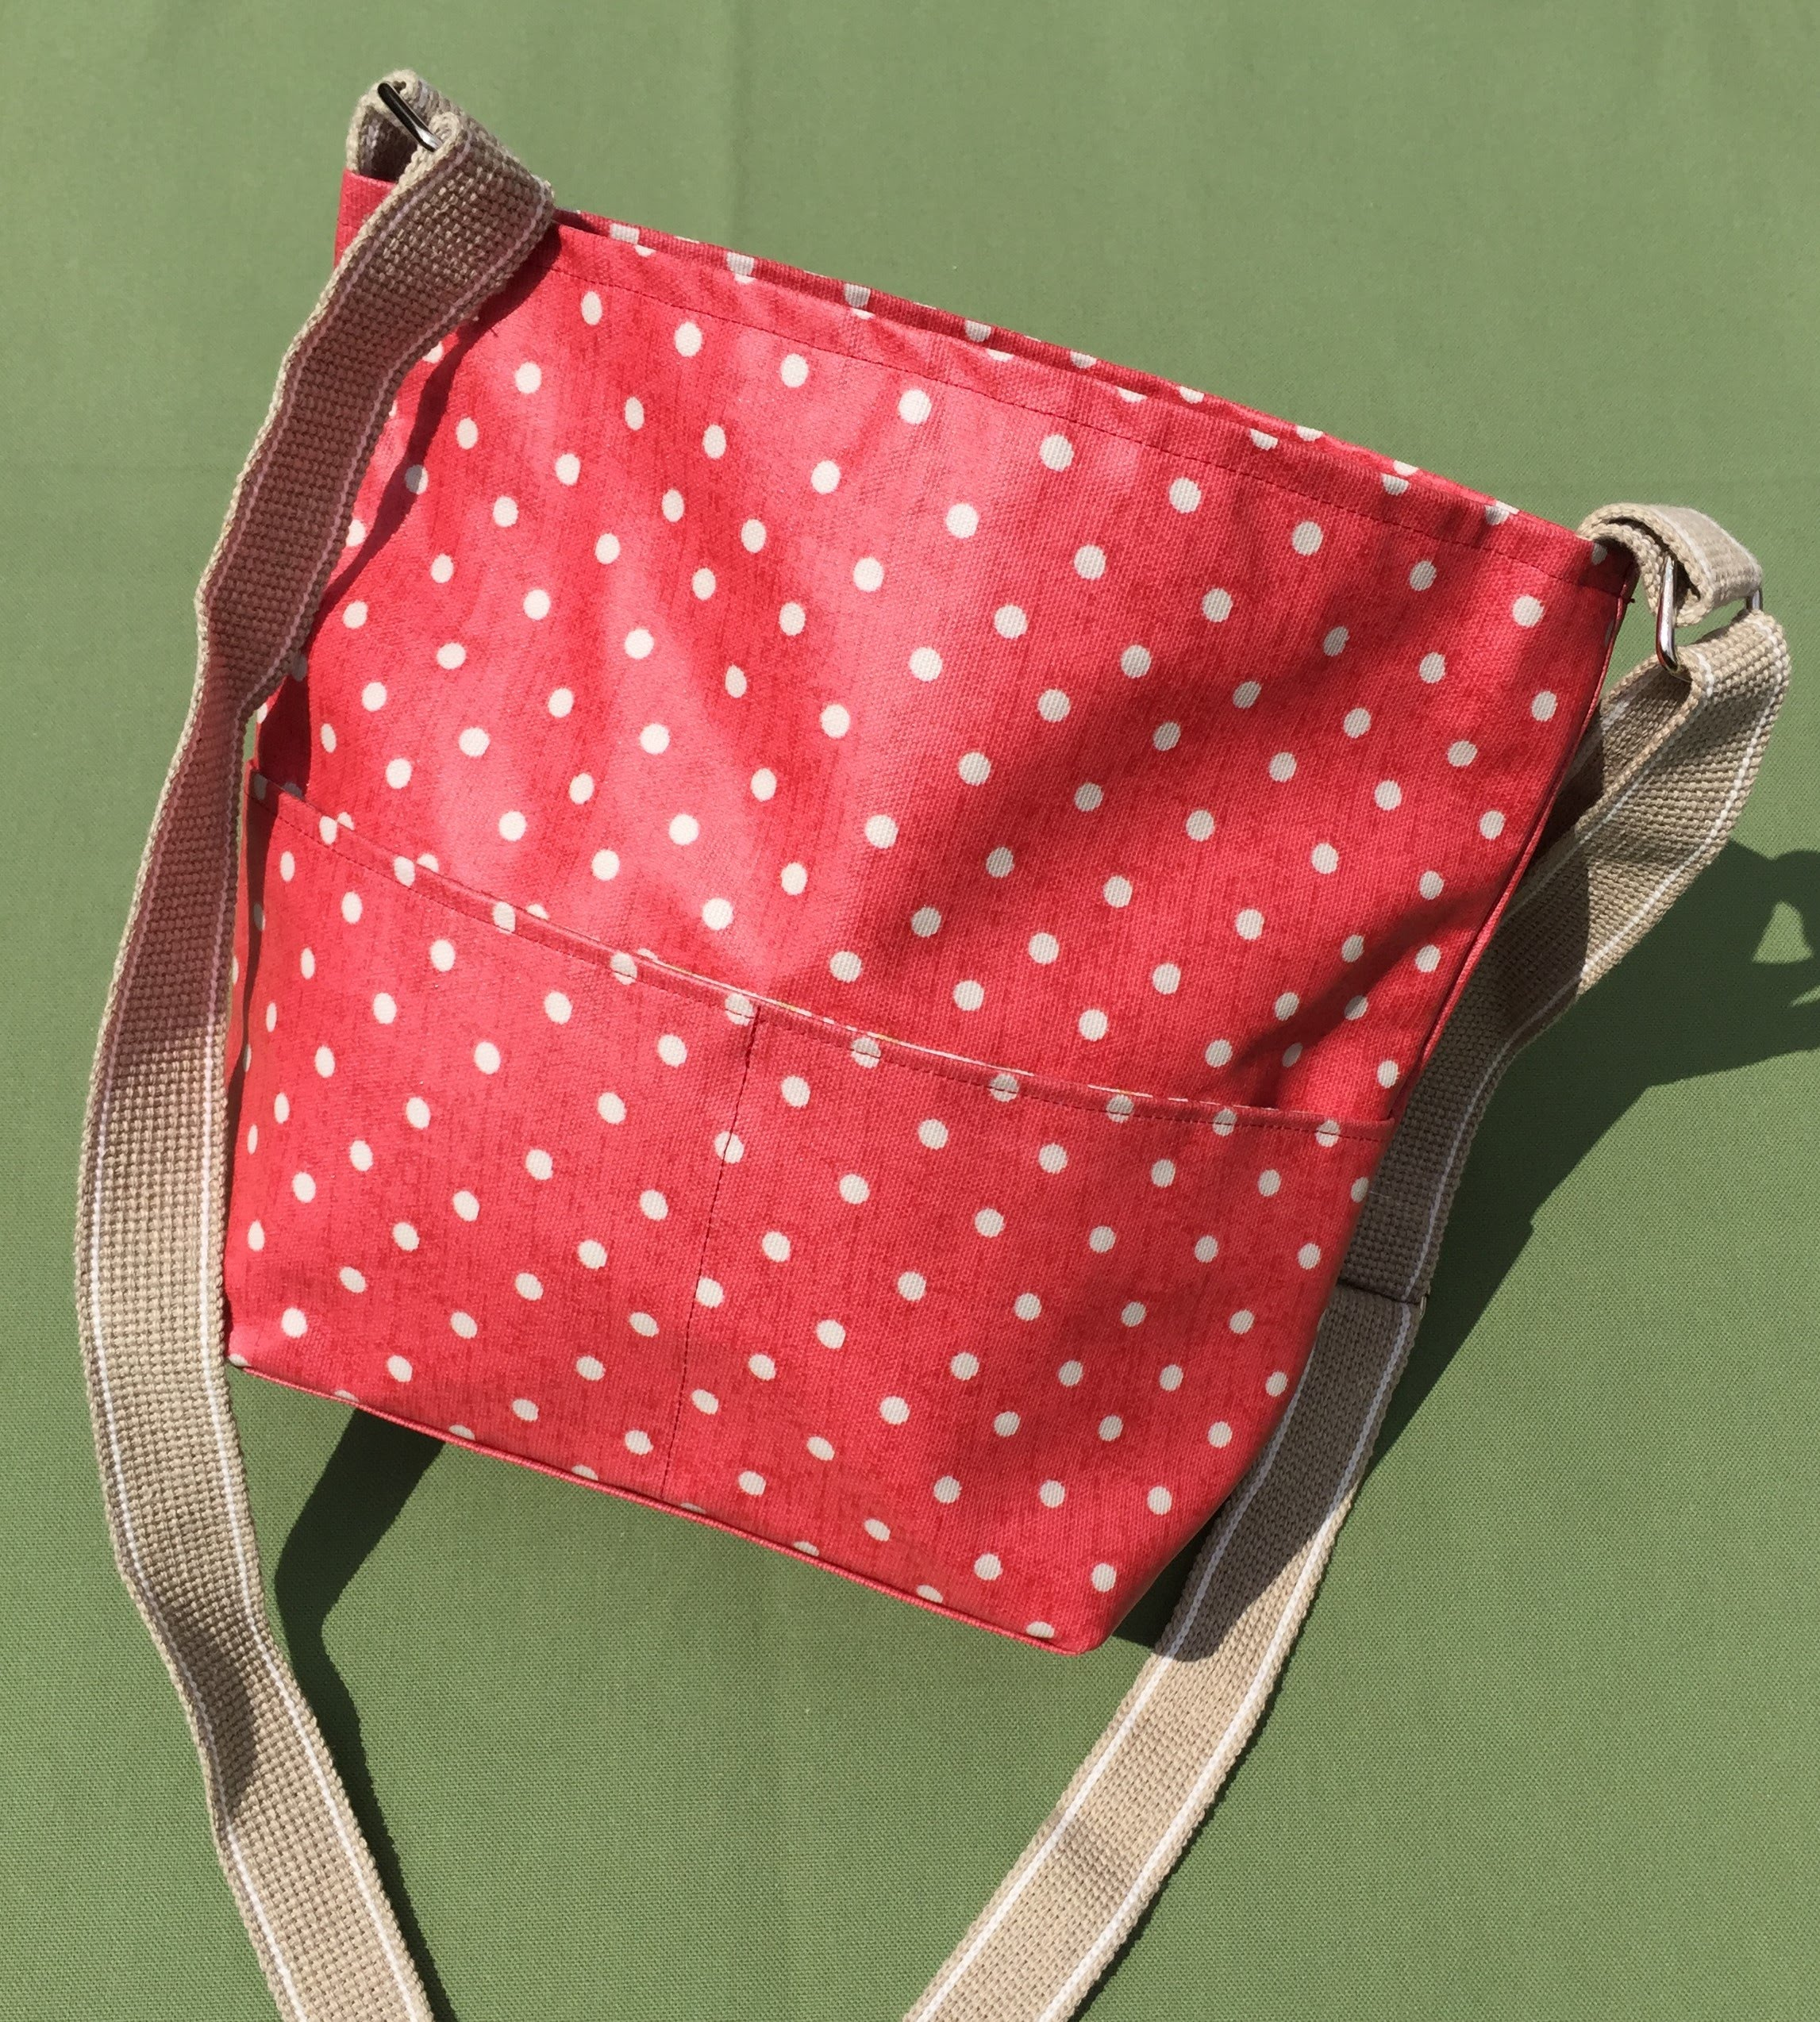 https://sites.google.com/a/handmadebymelinda.co.uk/handmadebymelinda/home/shop/bags/messenger-bags-1/ms0084-raspberry-floral-adjustable